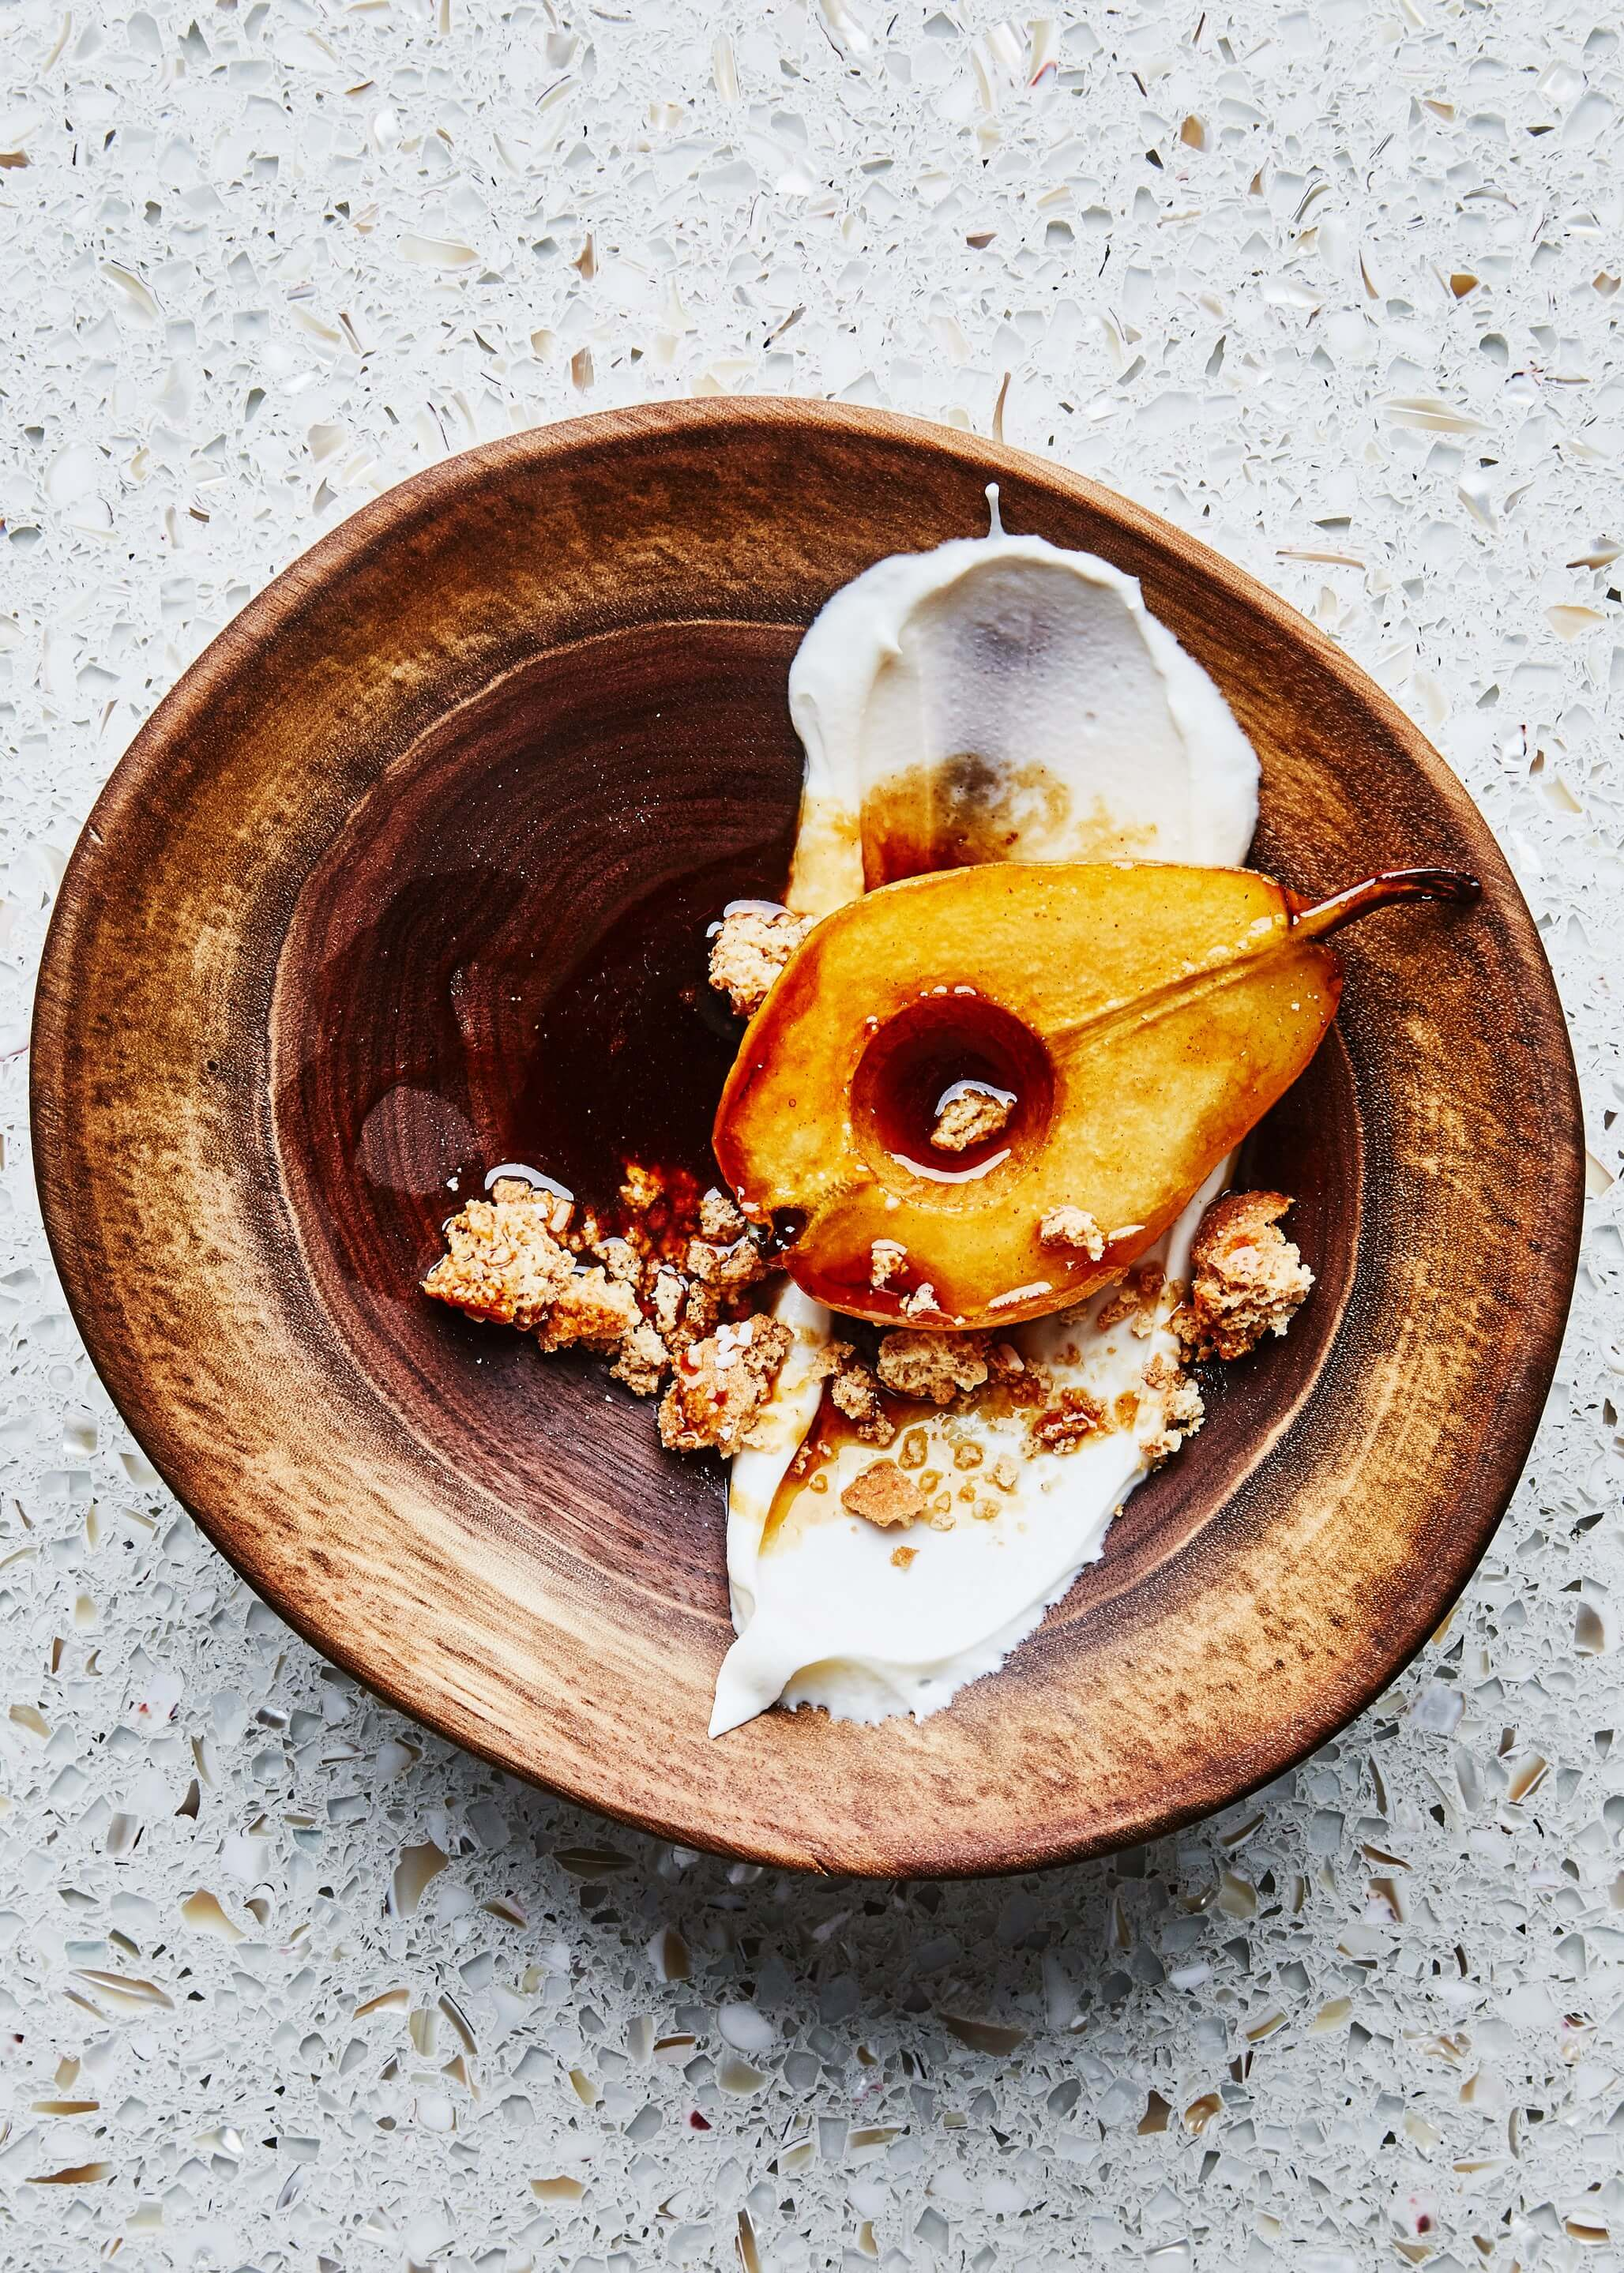 Flambéed Pears Are the Deceptively Simple Dessert of Our Dreams